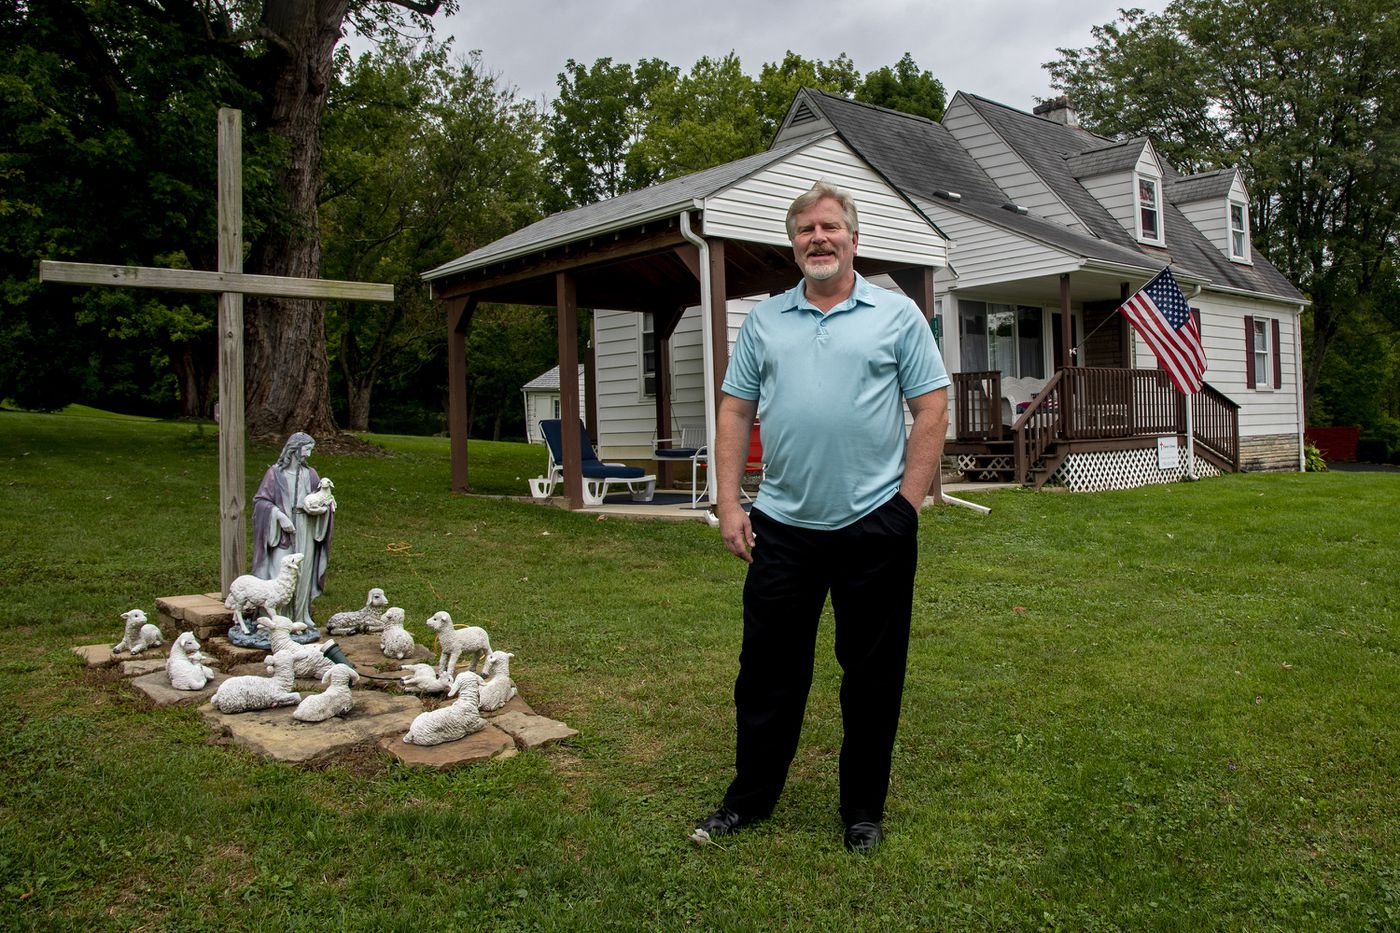 David Greer, pastor of the Norvelt Union Church, outside his home in Norvelt. Greer's is the grandson of an original homesteade.